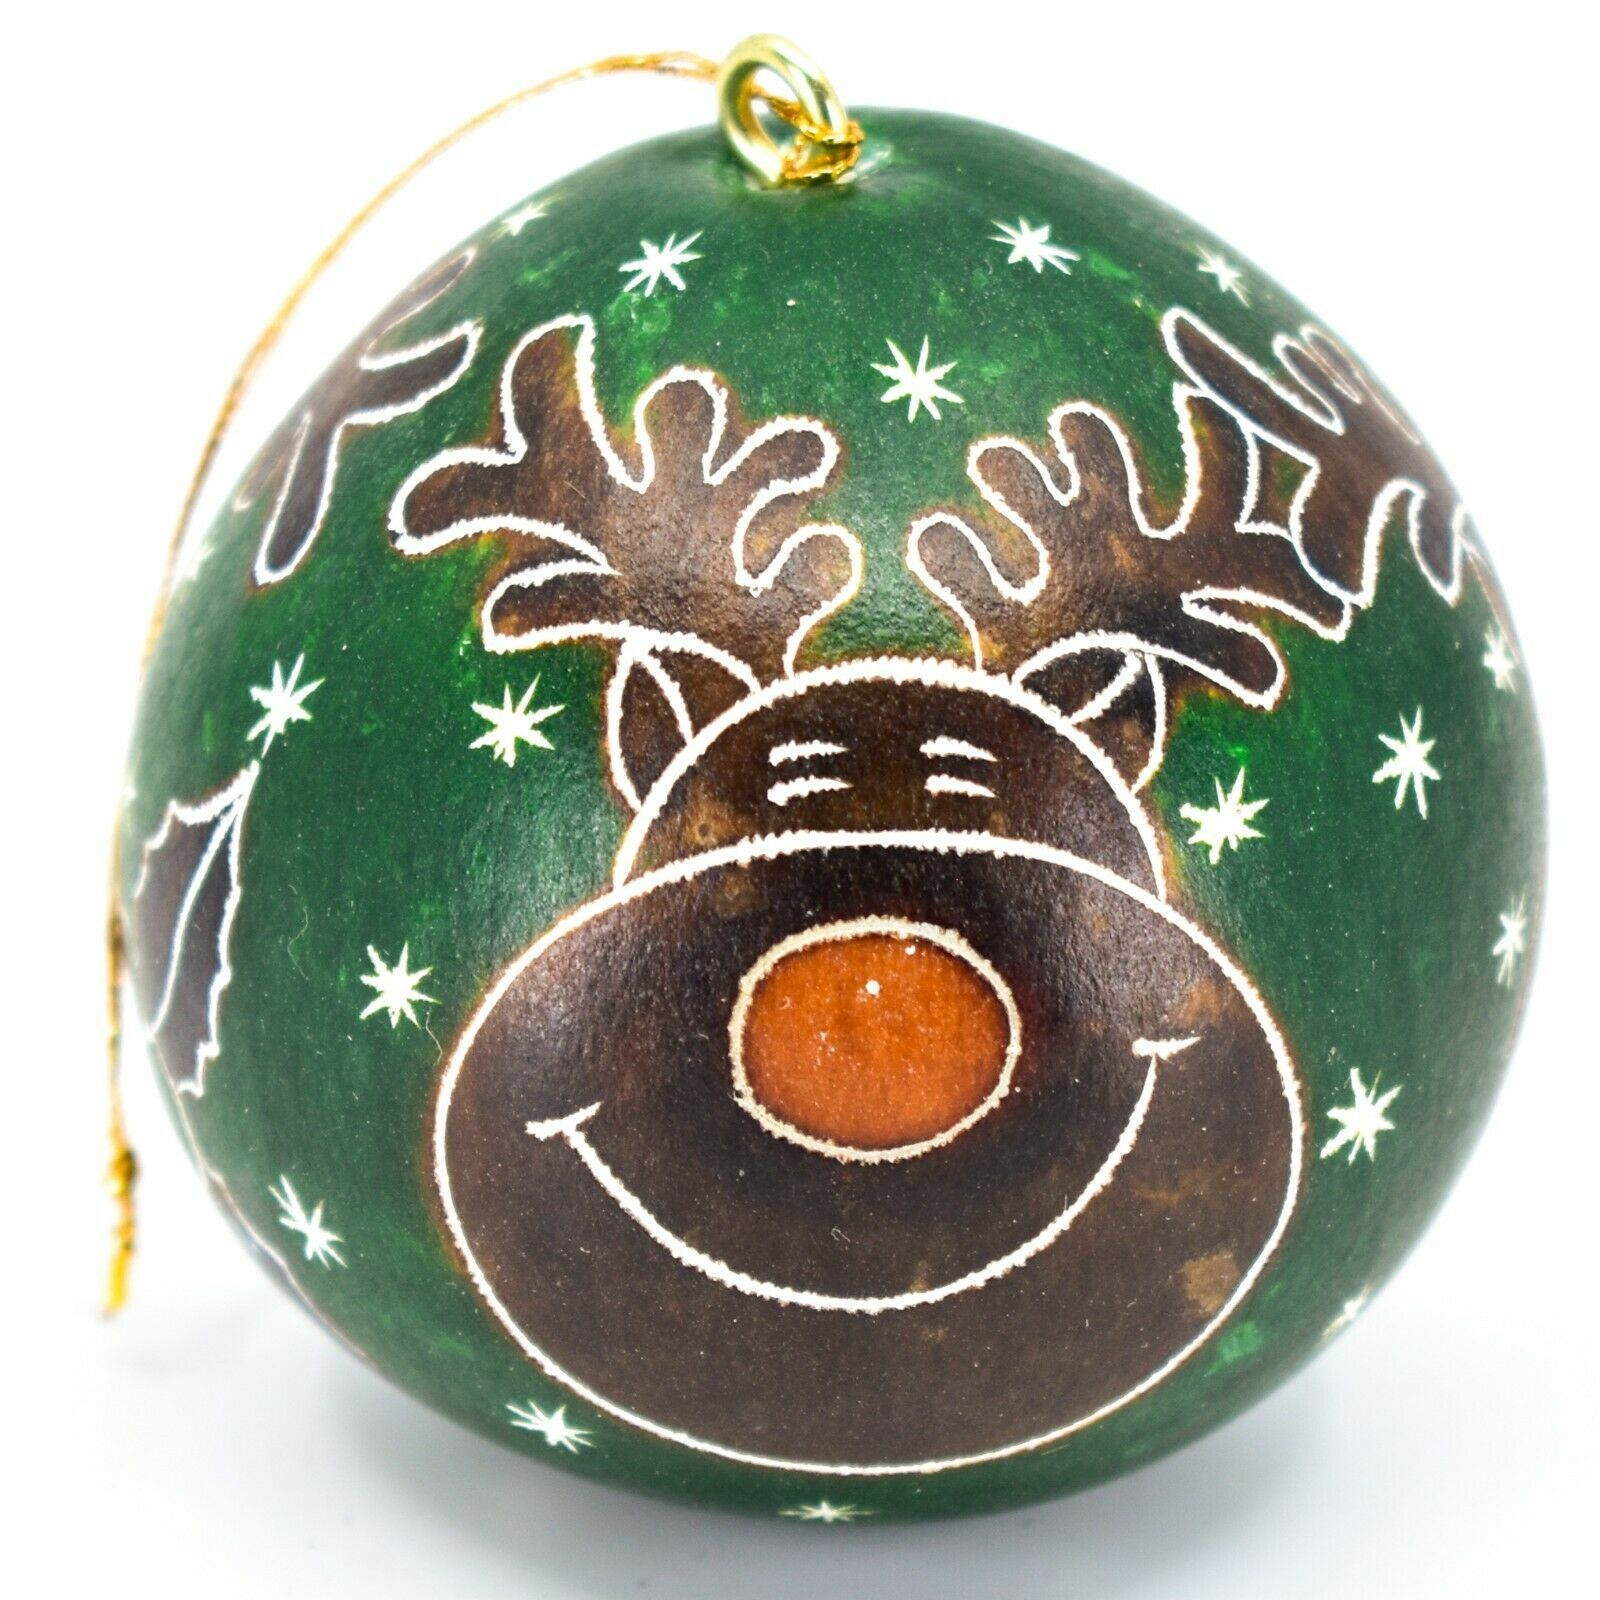 Handcrafted Carved Gourd Art Green Rudolph Reindeer Holiday Ornament Made Peru